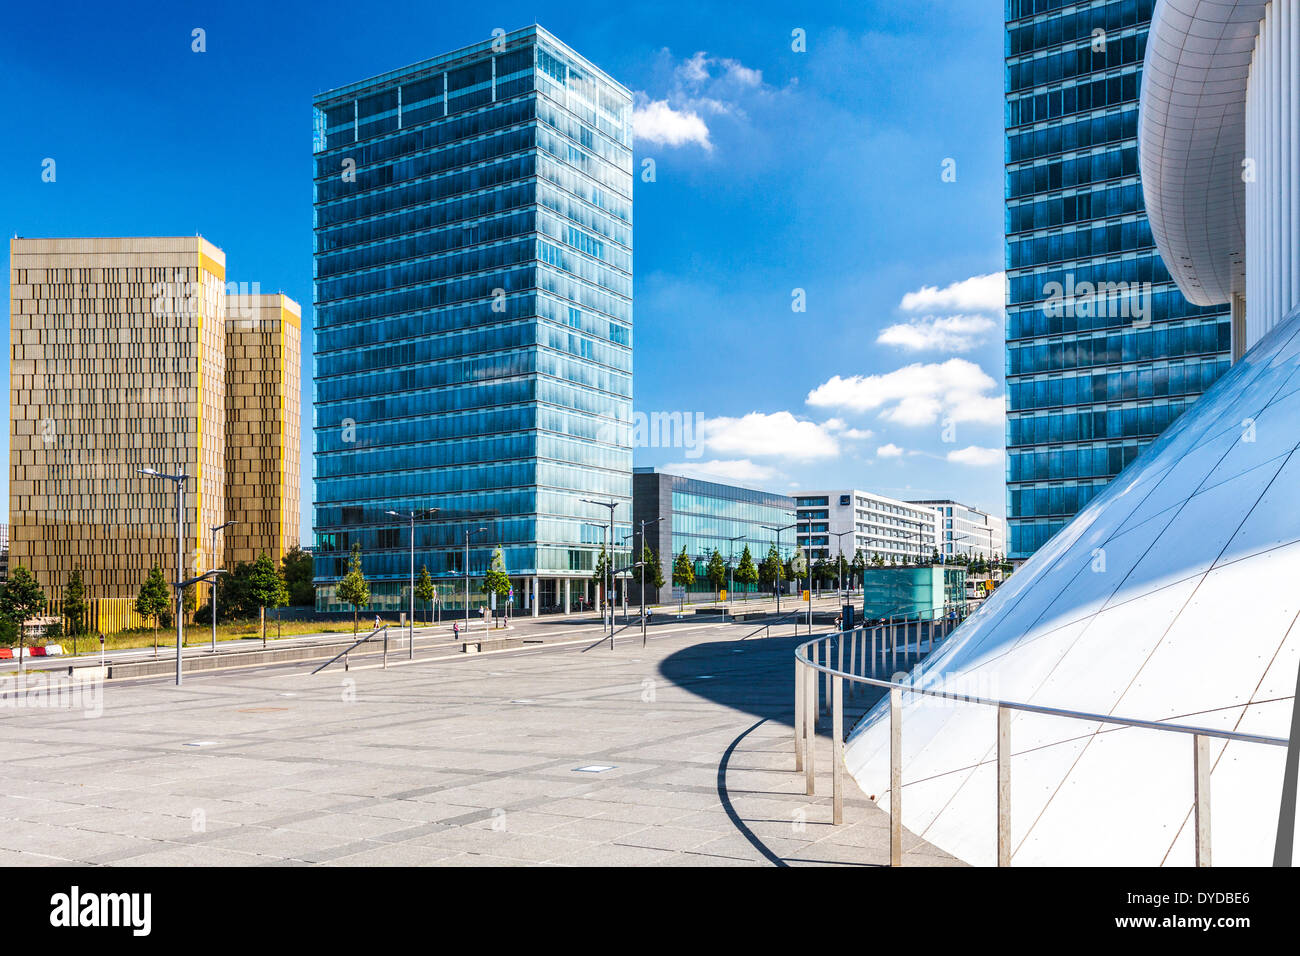 European Court of Justice with the European Parliament and part of the Philharmonie concert hall on the Kirchberg Plateau in Lux - Stock Image